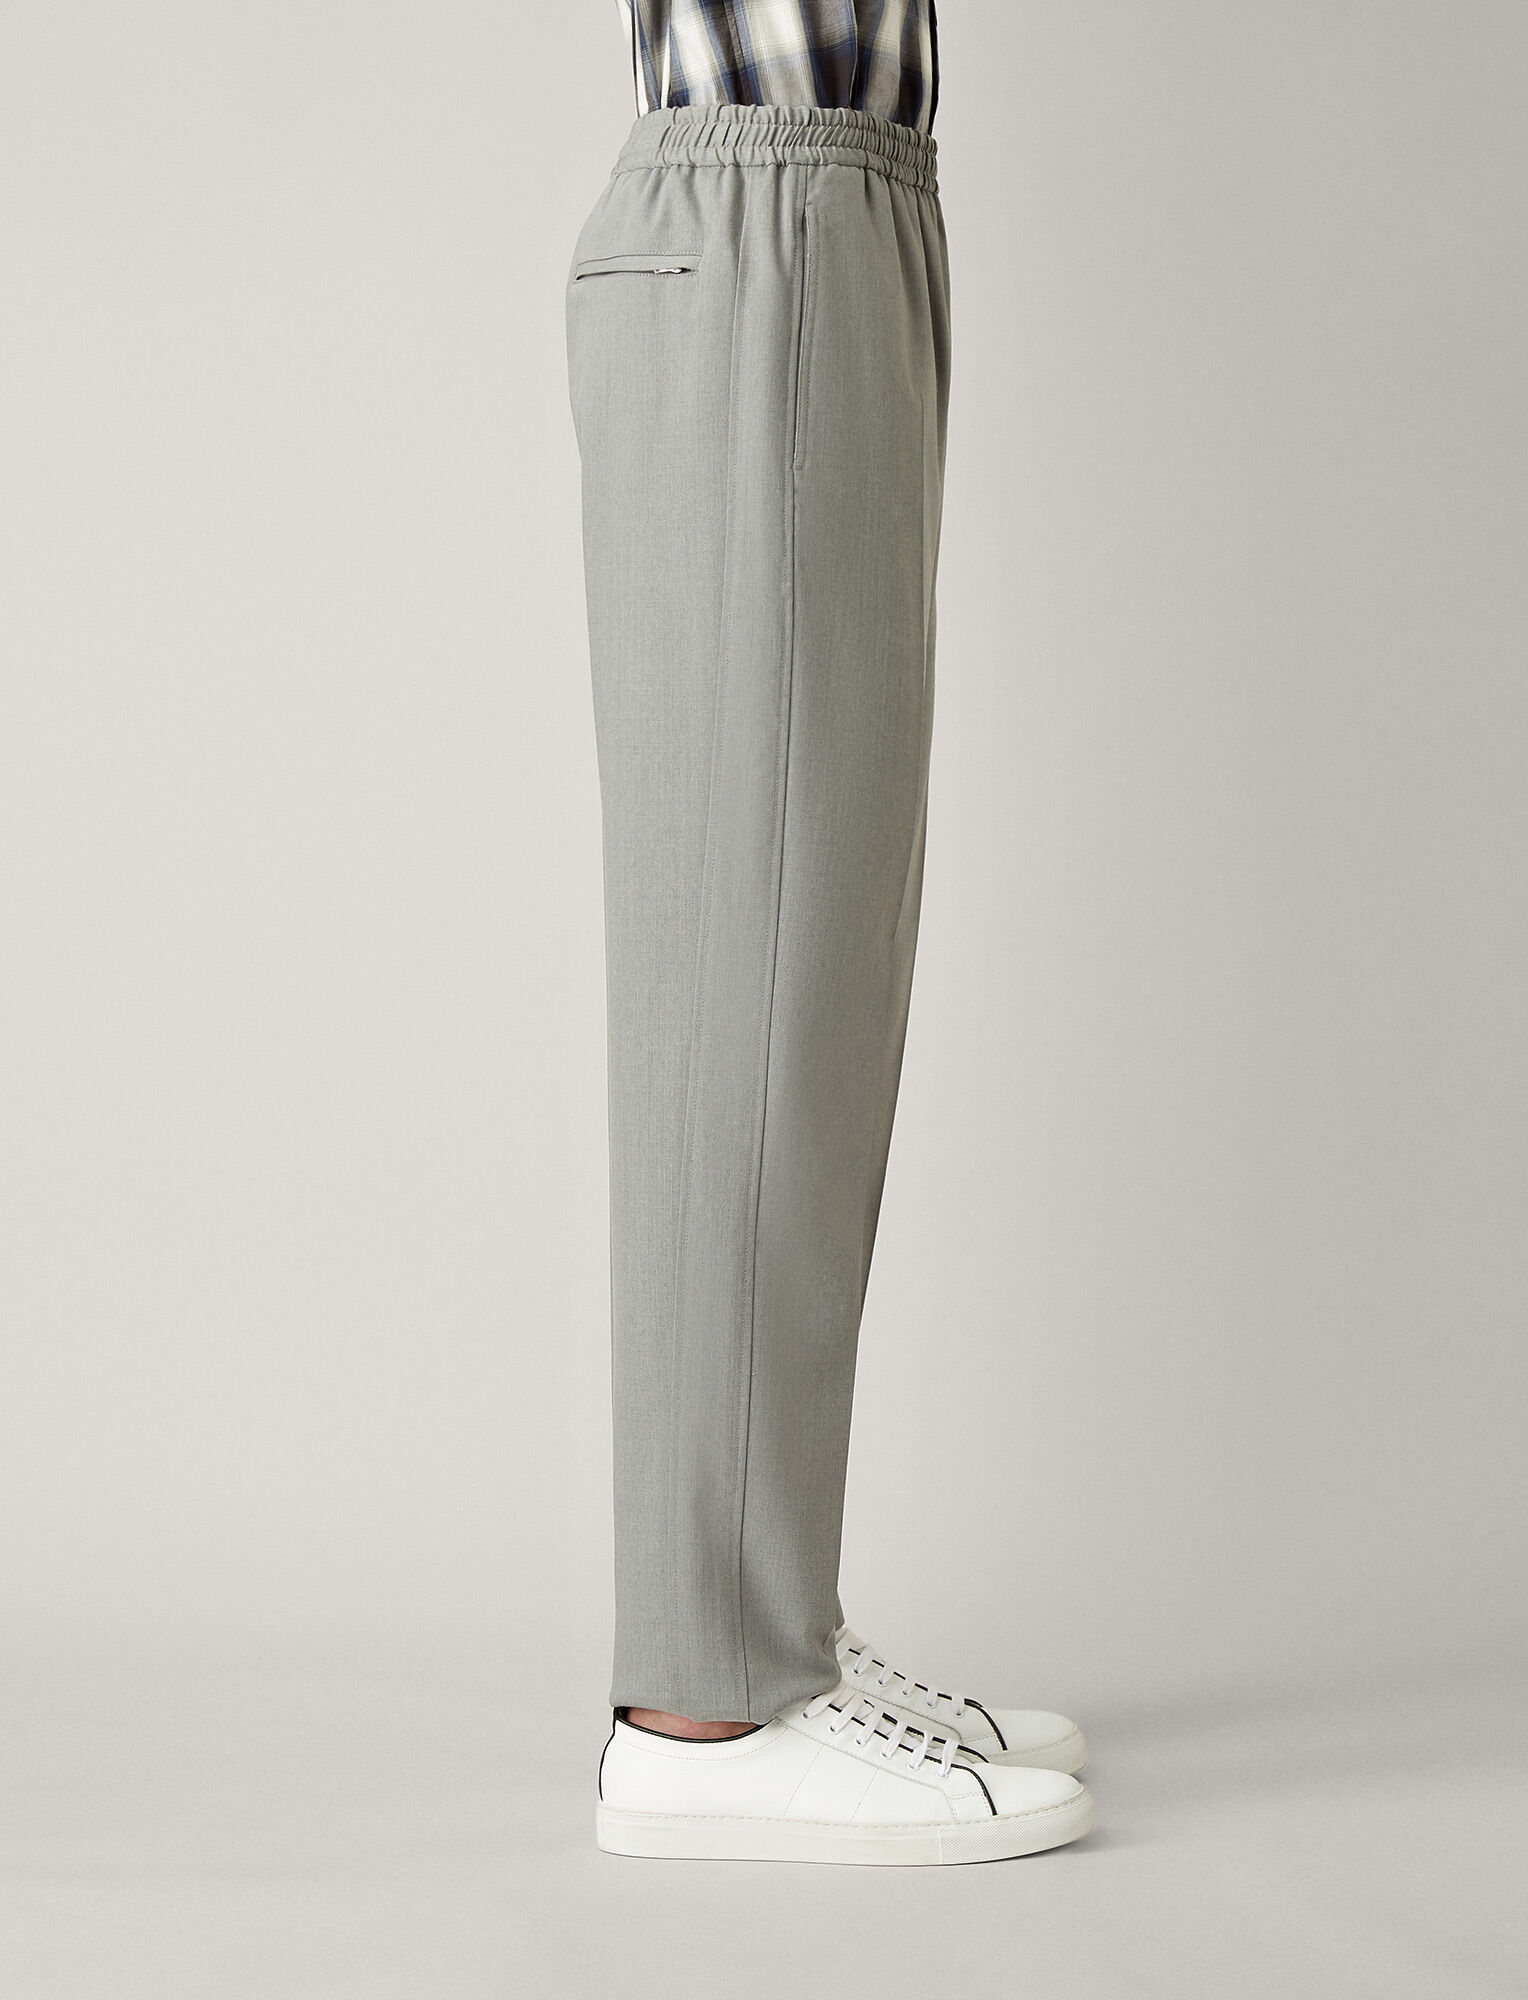 Joseph, Ettrick Fine Comfort Wool Trousers, in GREY CHINE